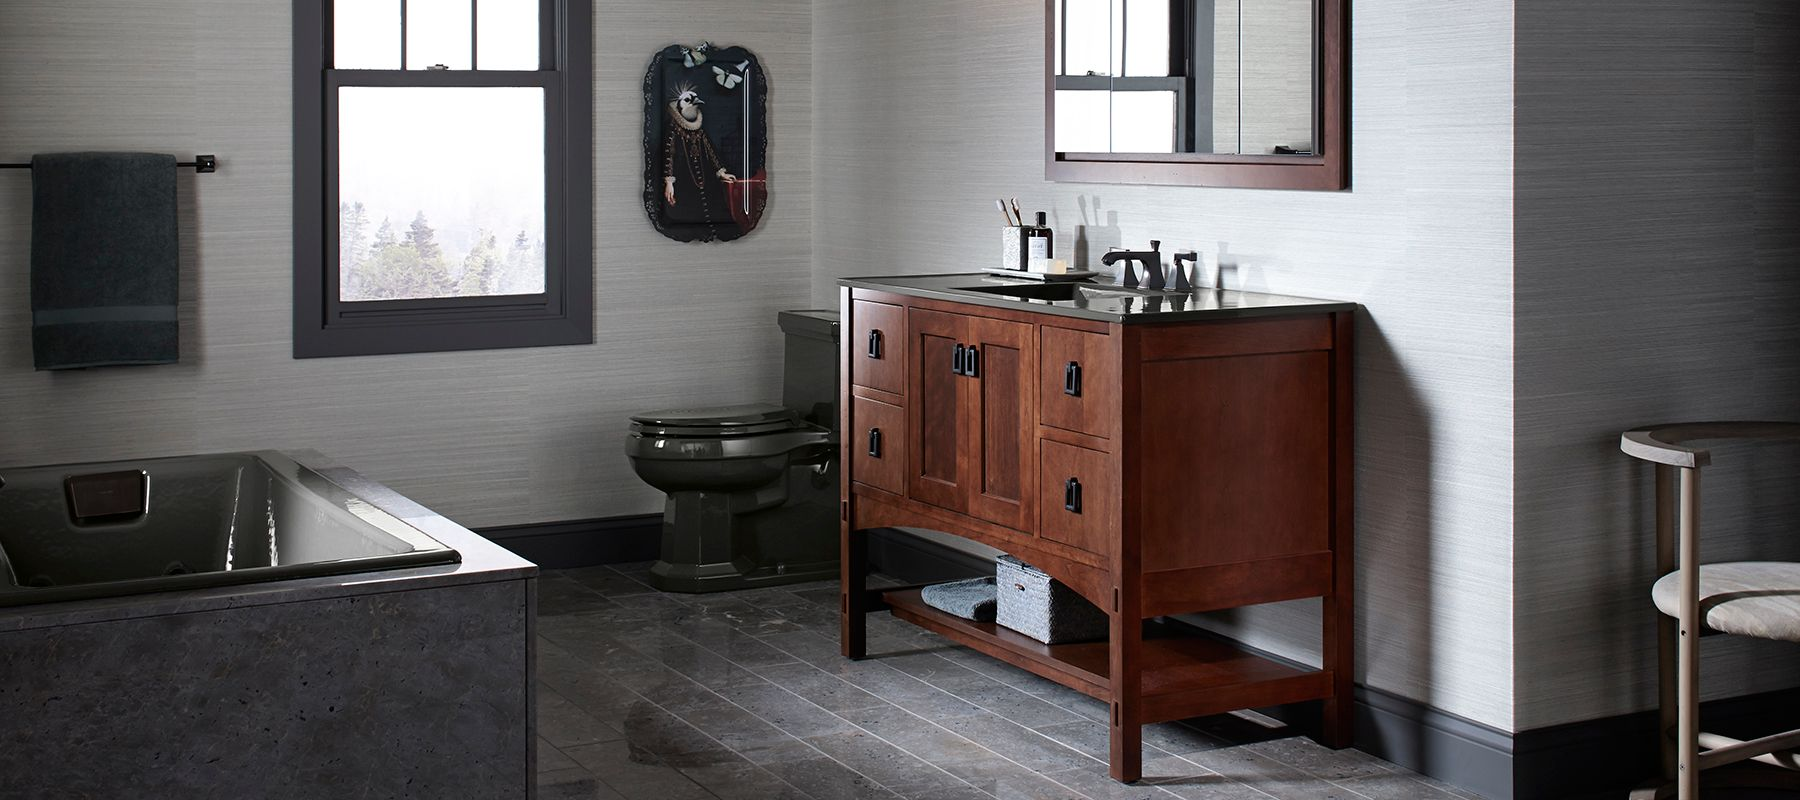 Bathroom Kohler Bathroom Sinks Bathroom Kohler